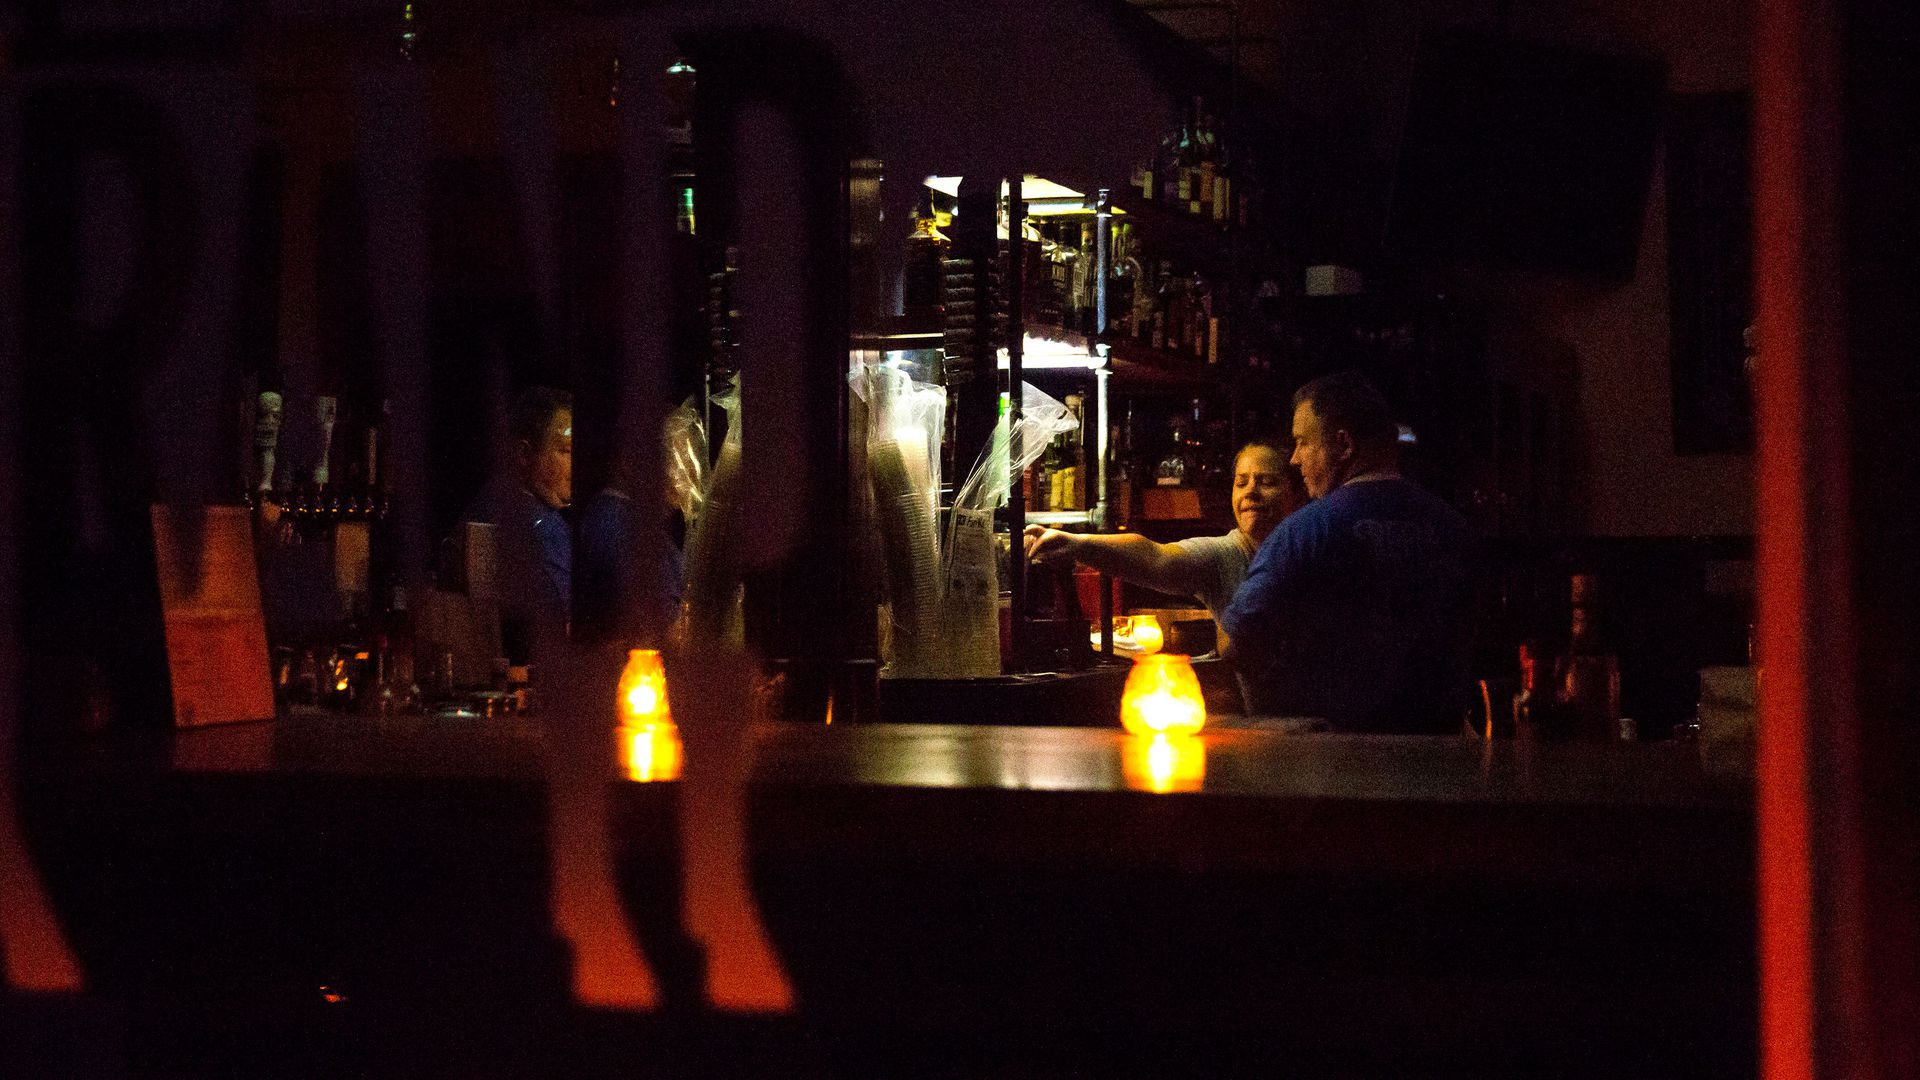 In this image, a bartender serves a customer at a darkened bar.